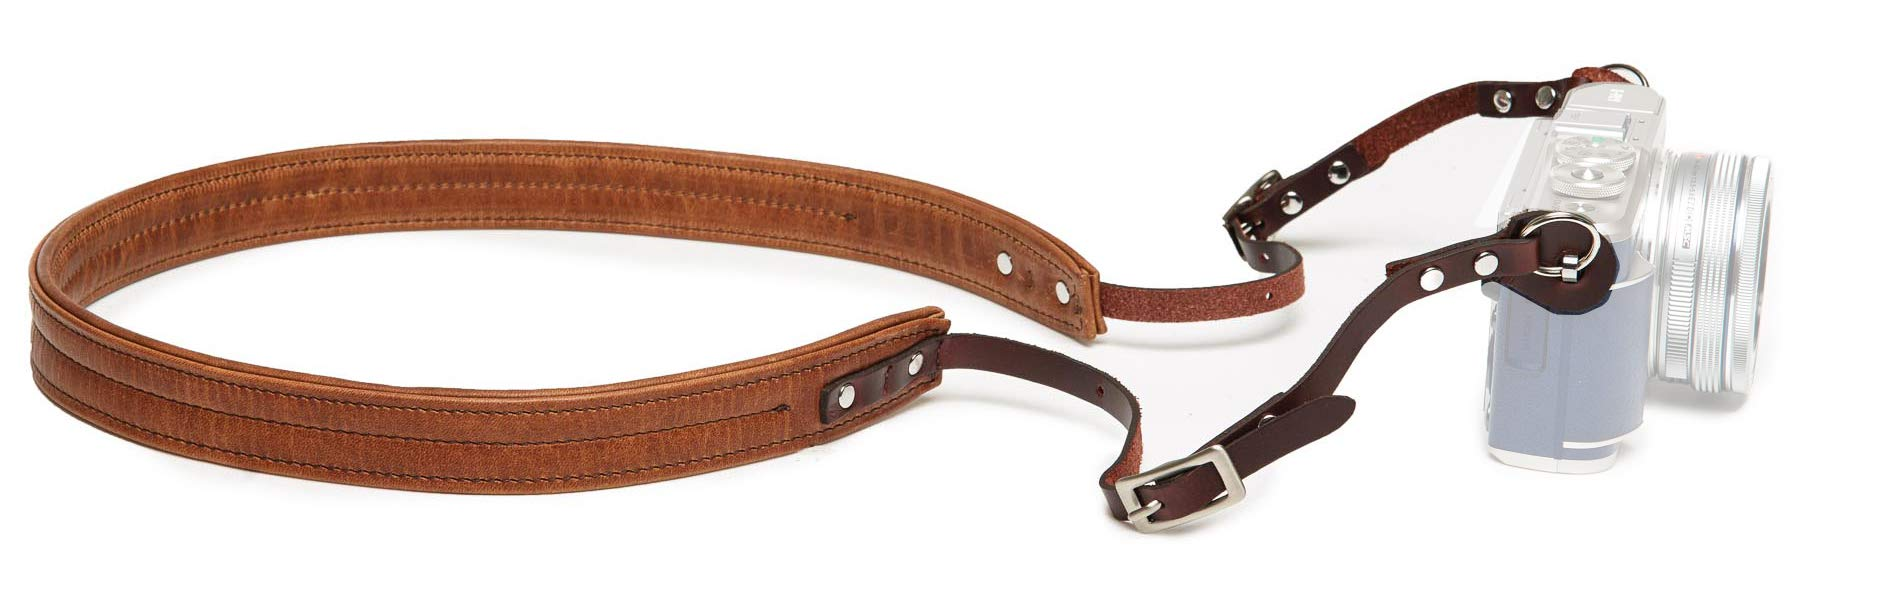 Ona The Oslo Padded Leather Camera Strap for Mirrorless and Film Cameras, Antique Cognac Brown